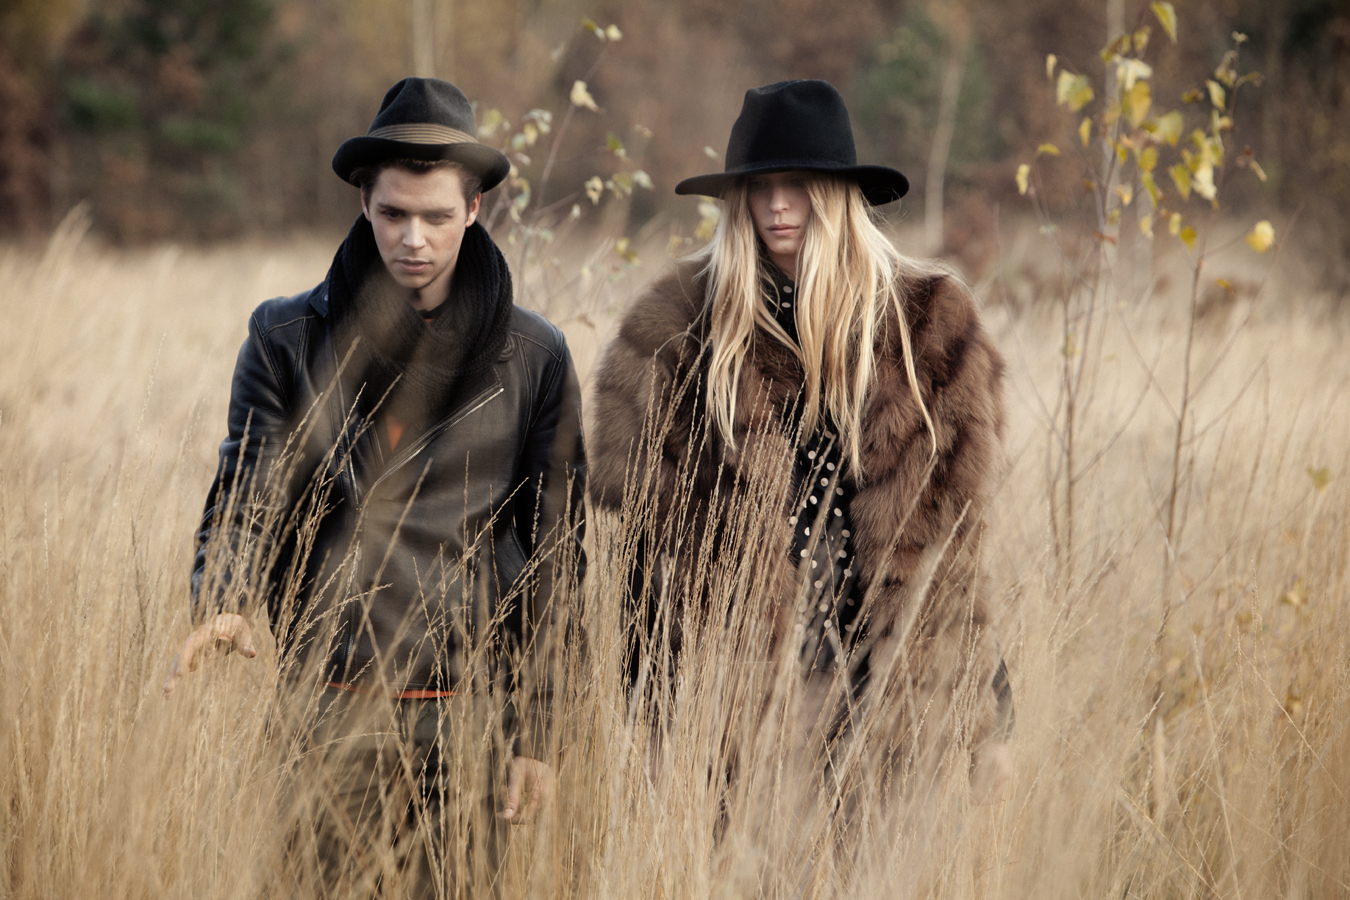 Marla Fabri and Nicolas Lagiere by John Hennequin for CHASSEUR MAGAZINE